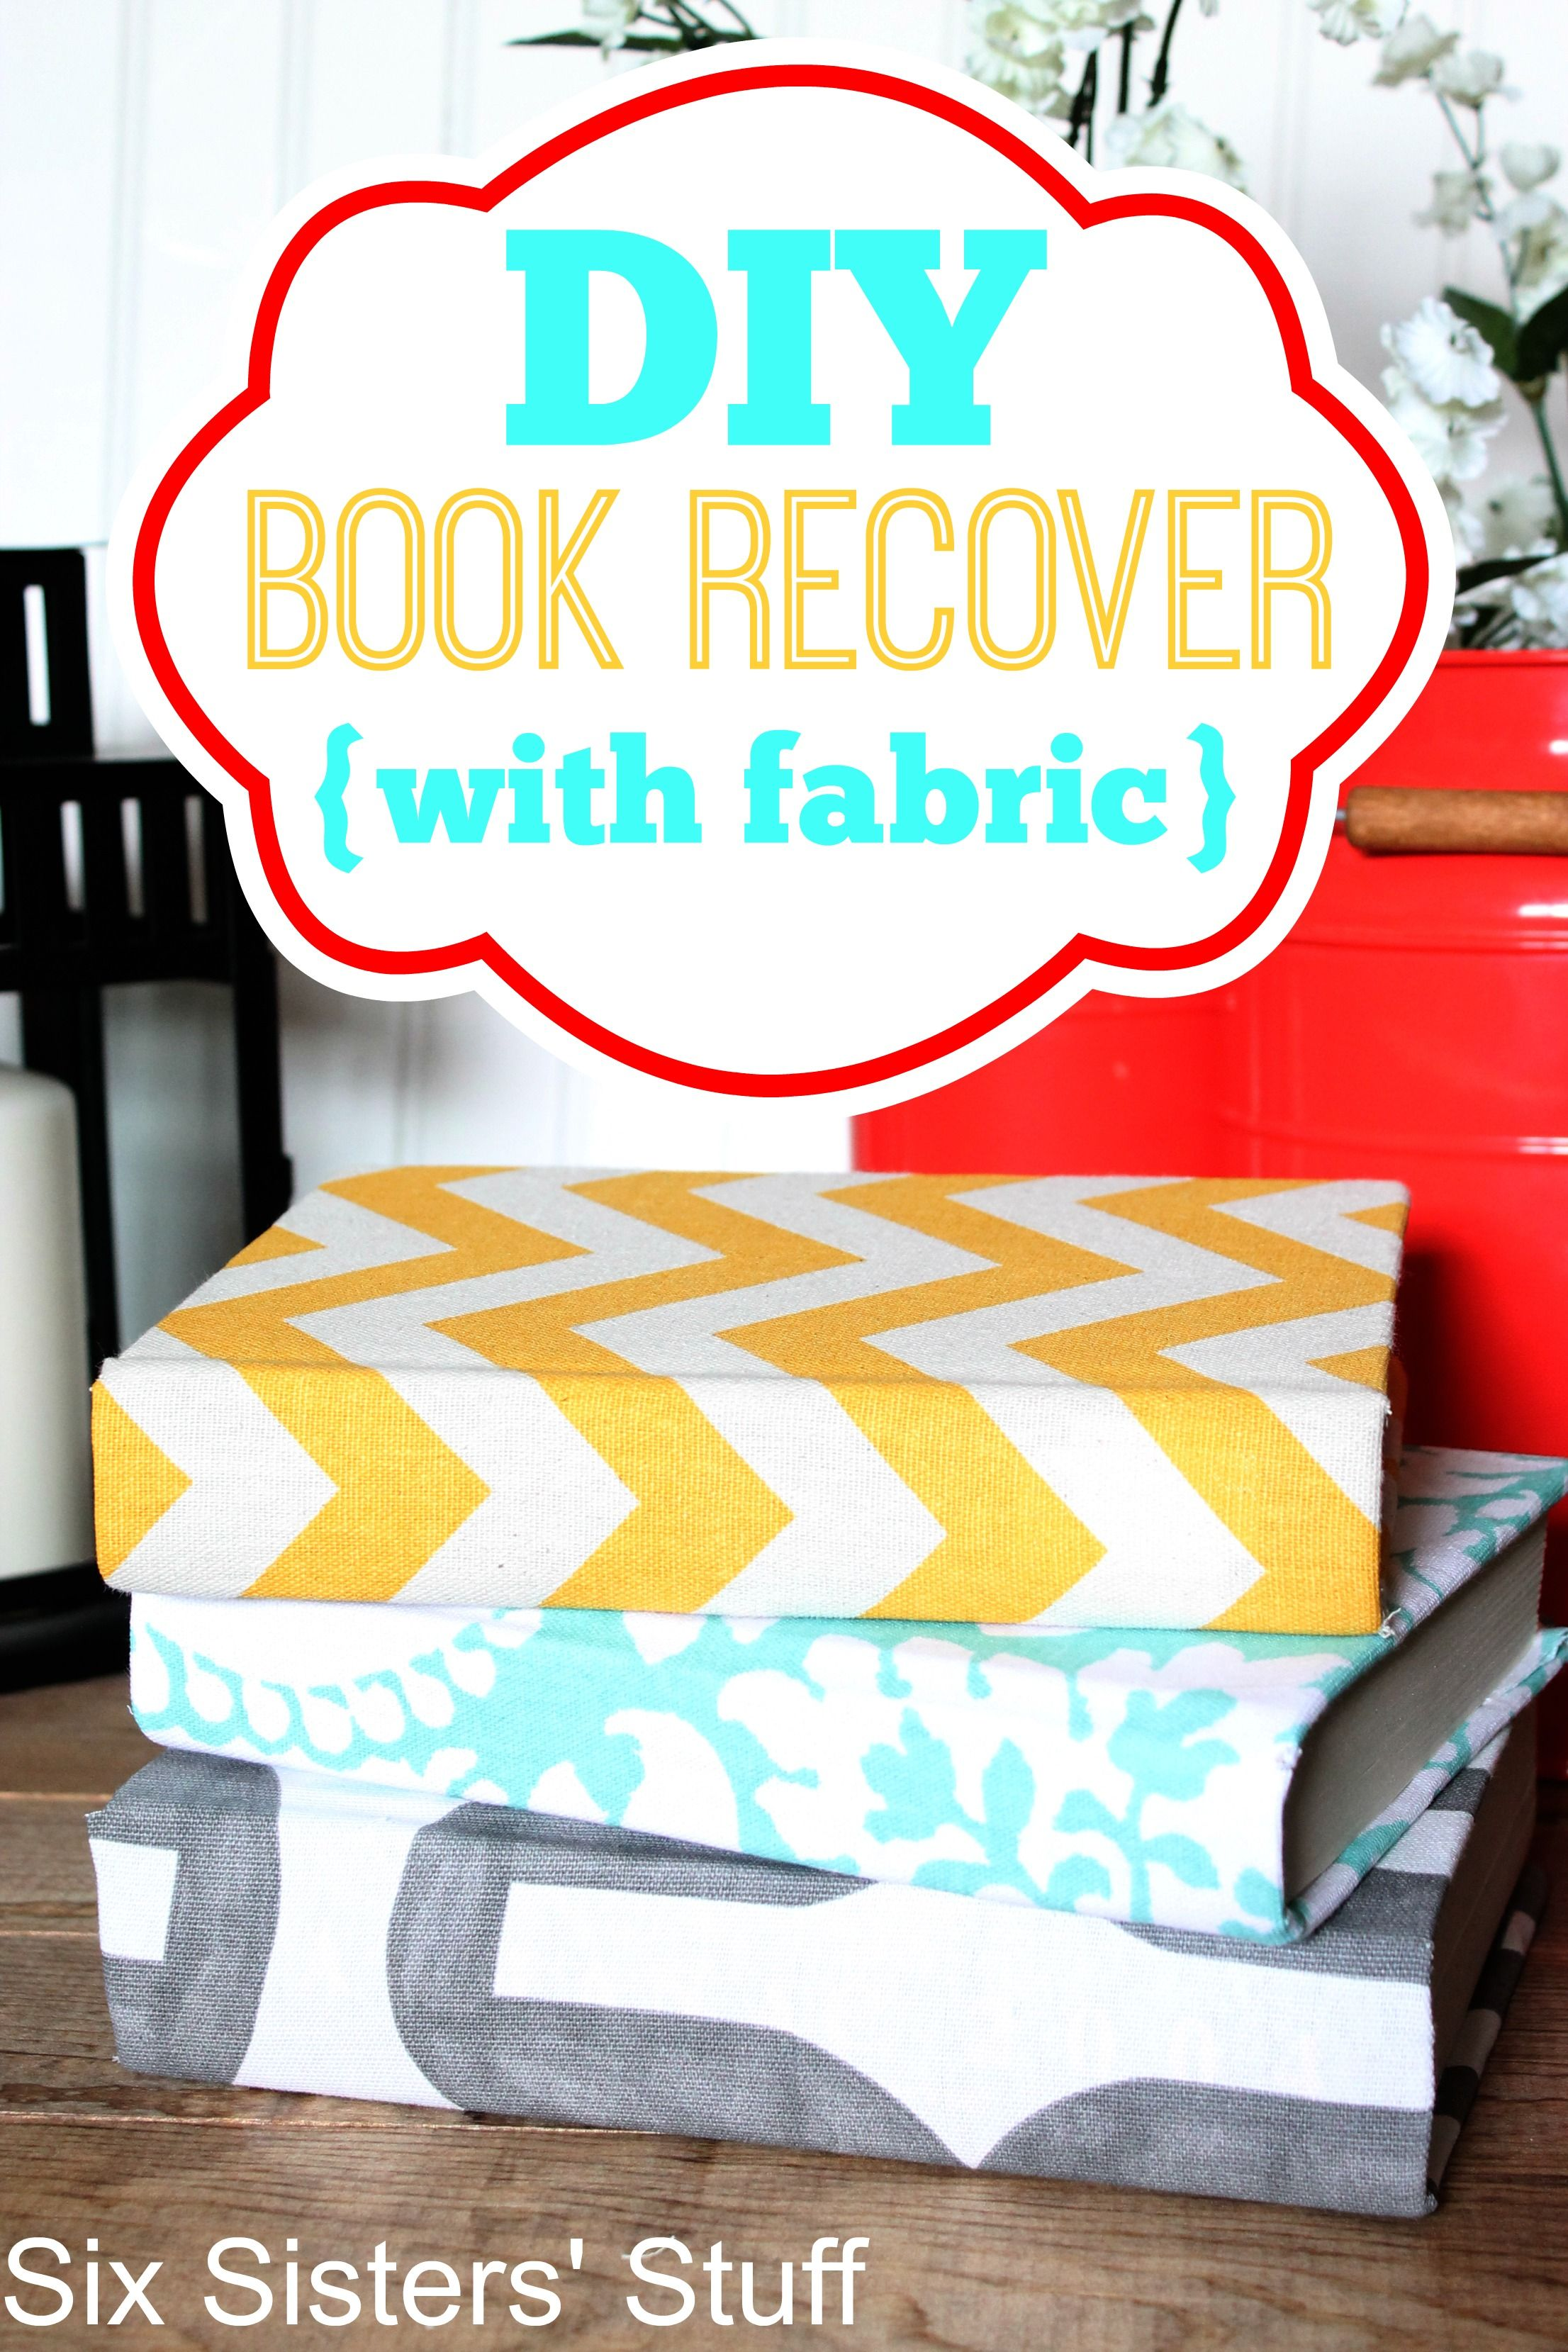 How To Restore Fabric Book Cover : Diy book recover with fabric from six sisters stuff such